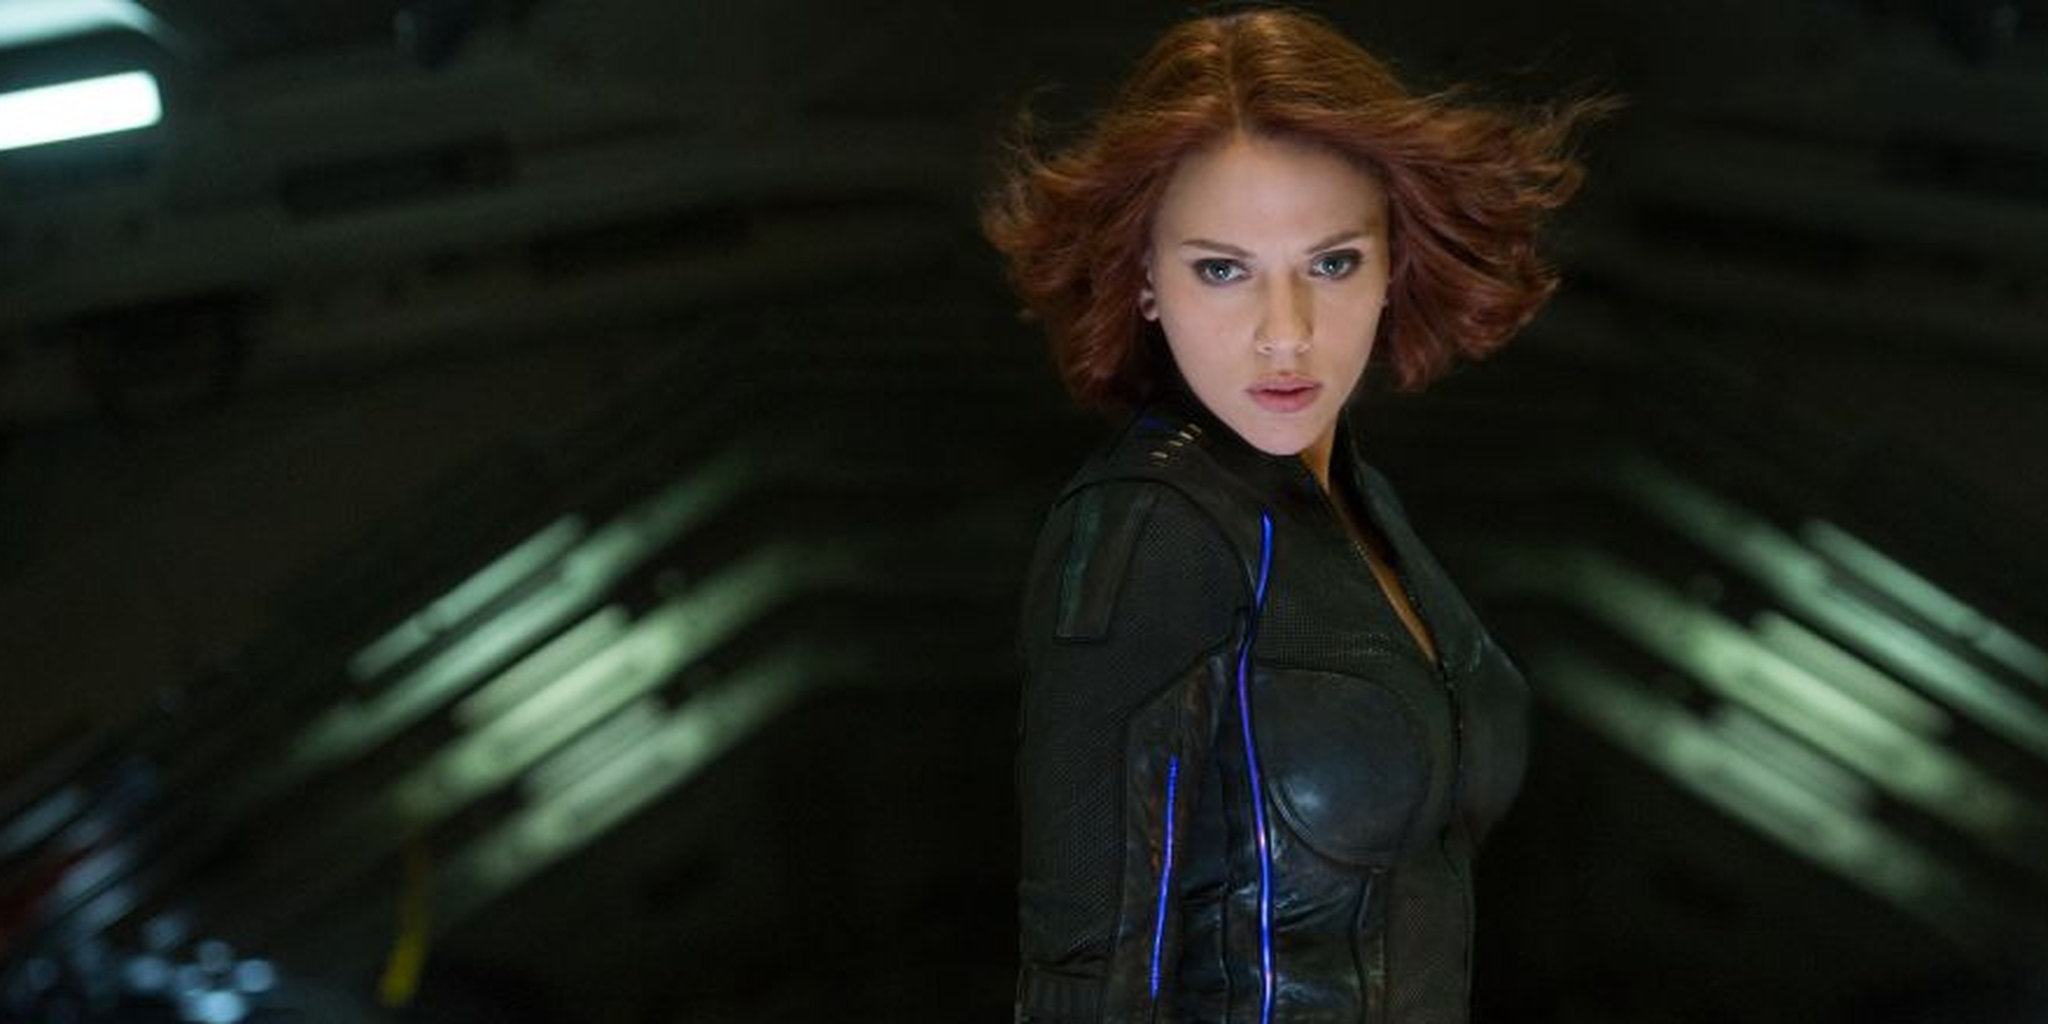 Marvel hired a screenwriter for a Black Widow standalone film.